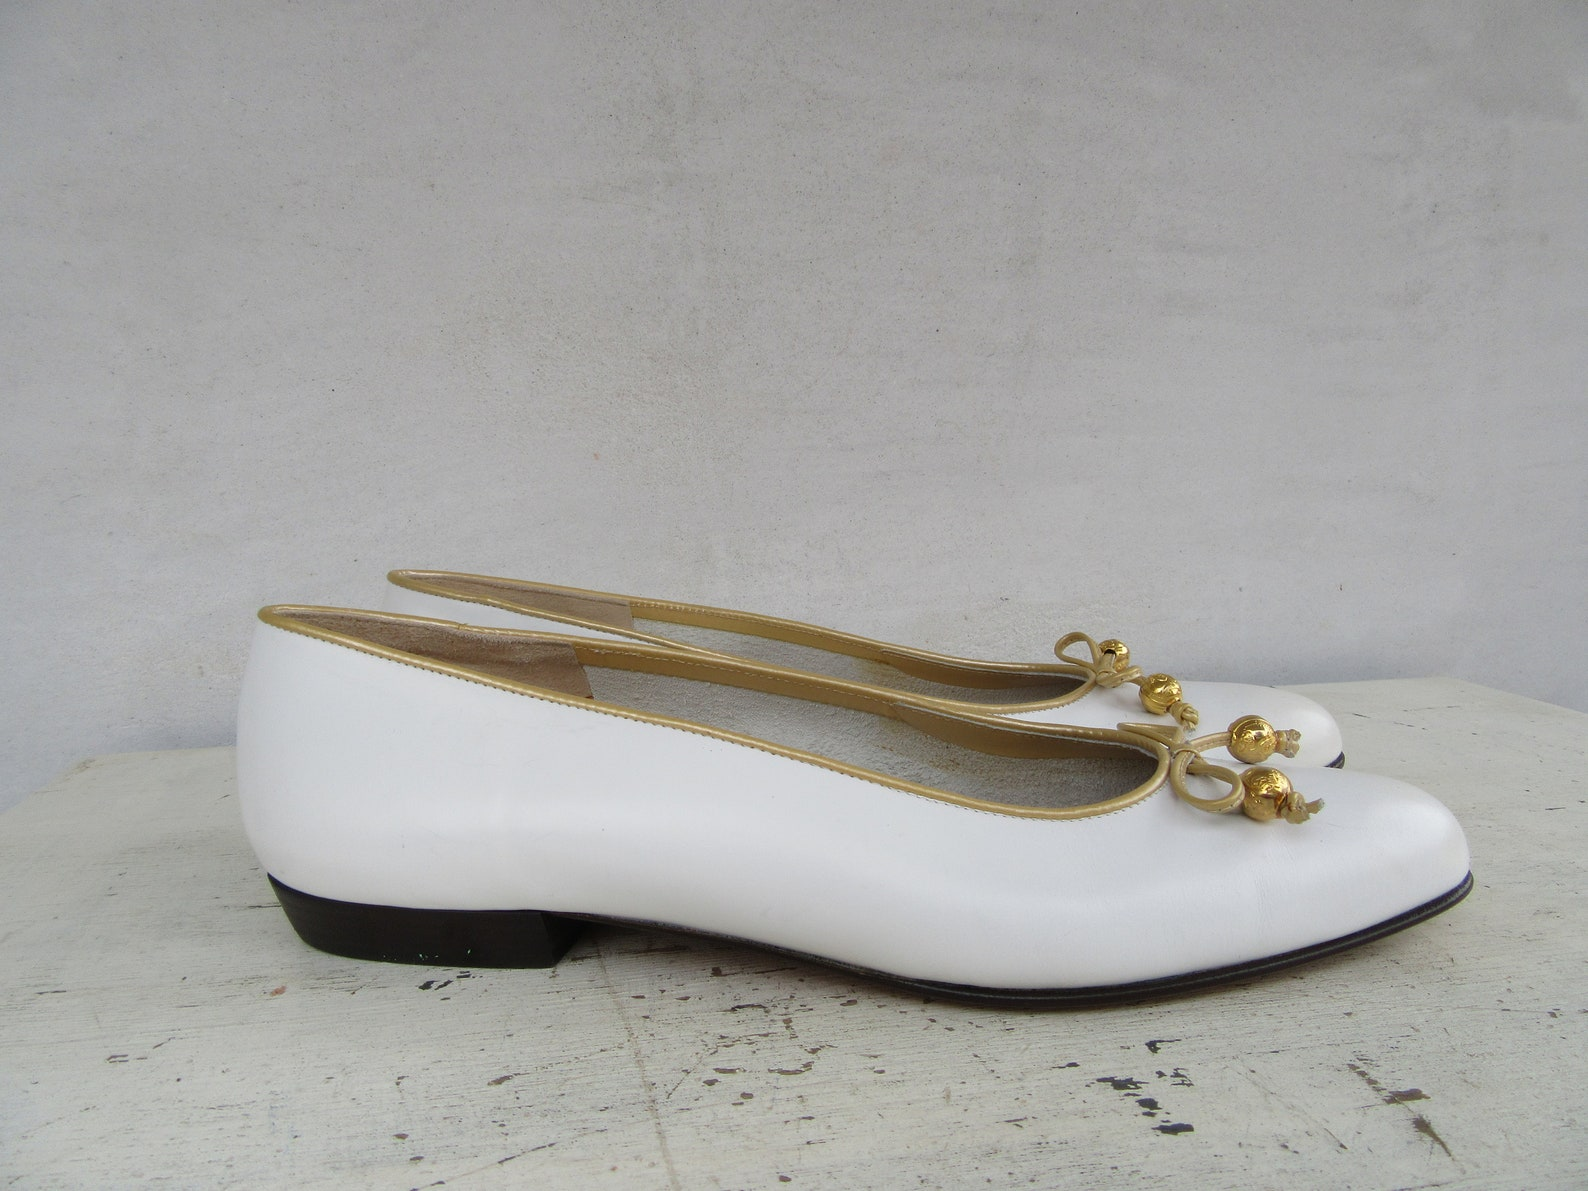 salvatore ferragamo bow flats white and gold leather ballet shoes size 8.5 aa narrow width 39 euro